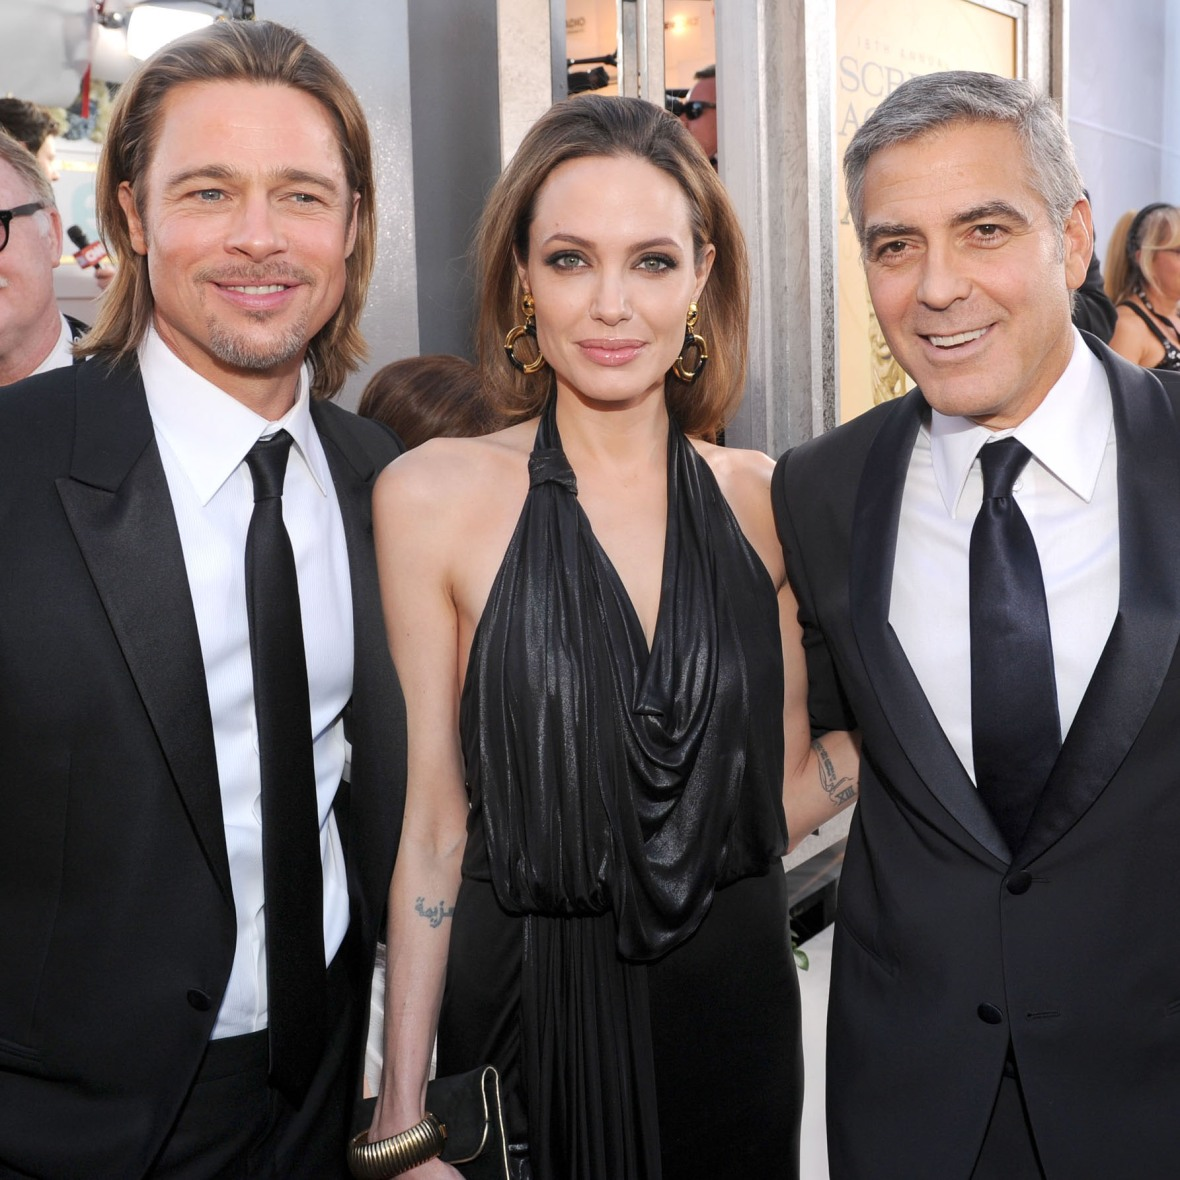 george clooney brad pitt angelina jolie getty images